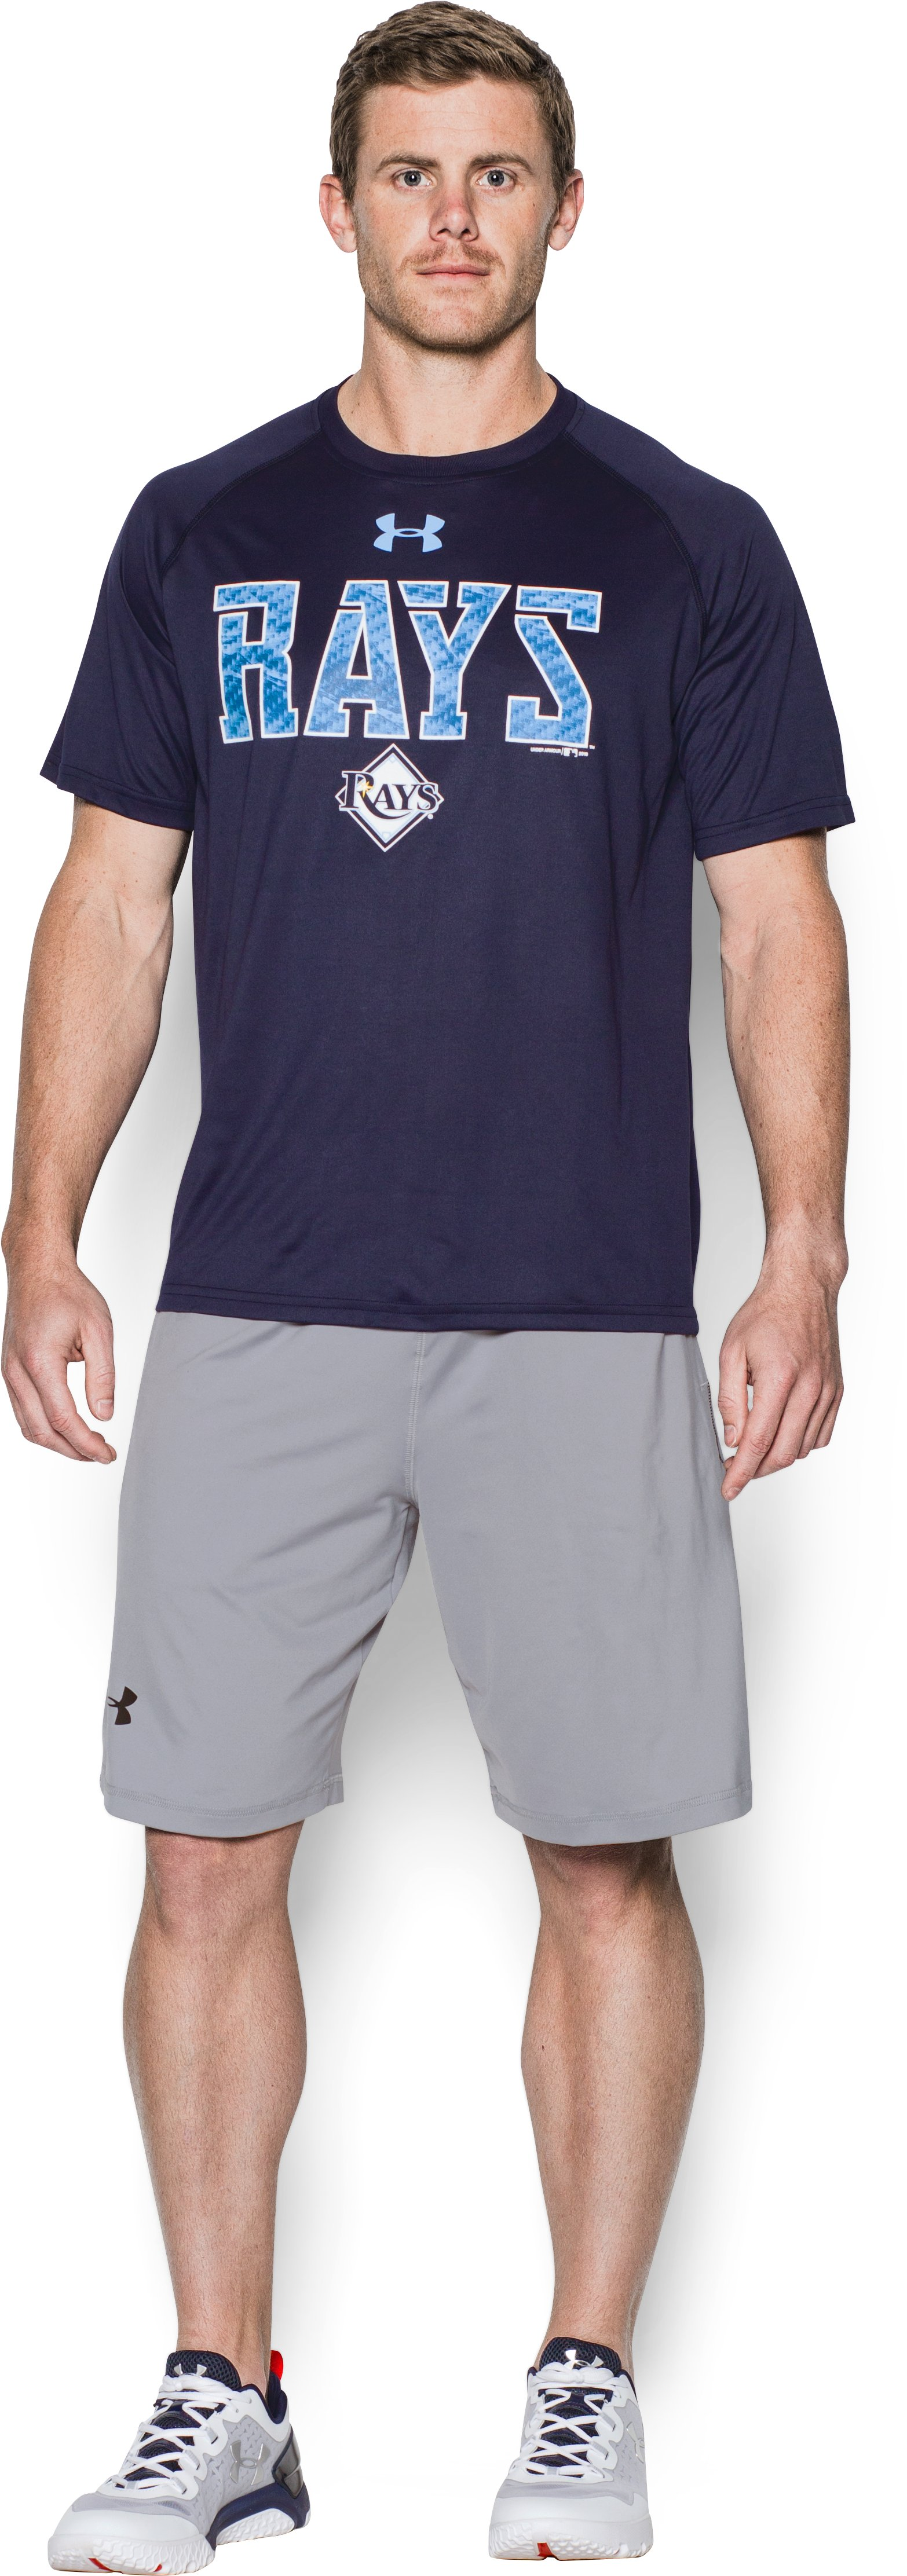 Men's Tampa Bay Rays Team Tech™ T-Shirt, Midnight Navy